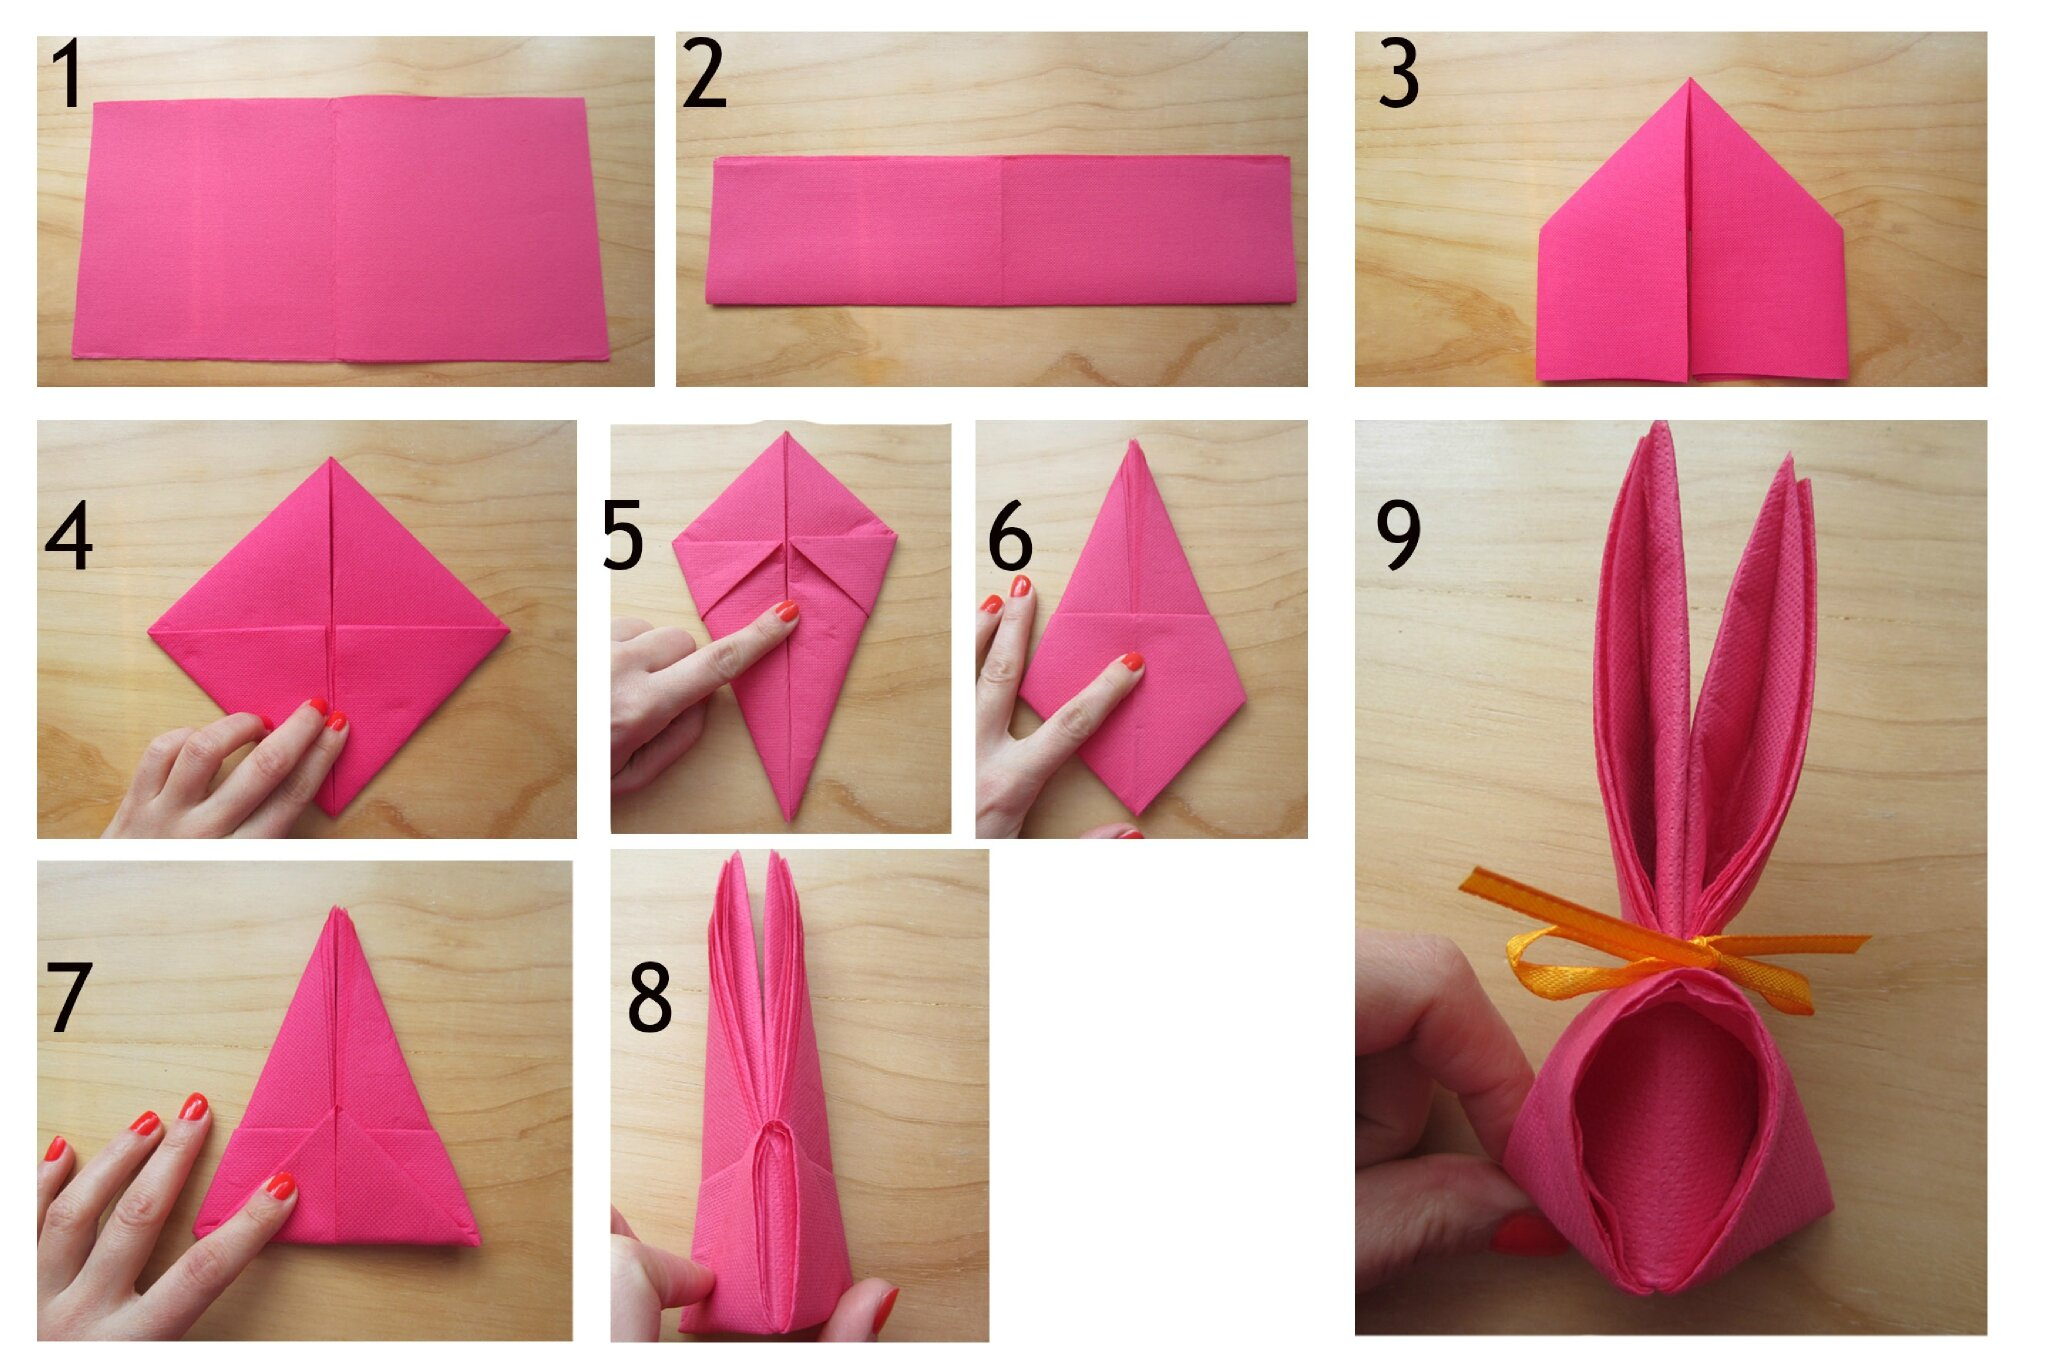 Comment coudre des serviettes de table - Comment plier des serviettes de table en papier ...